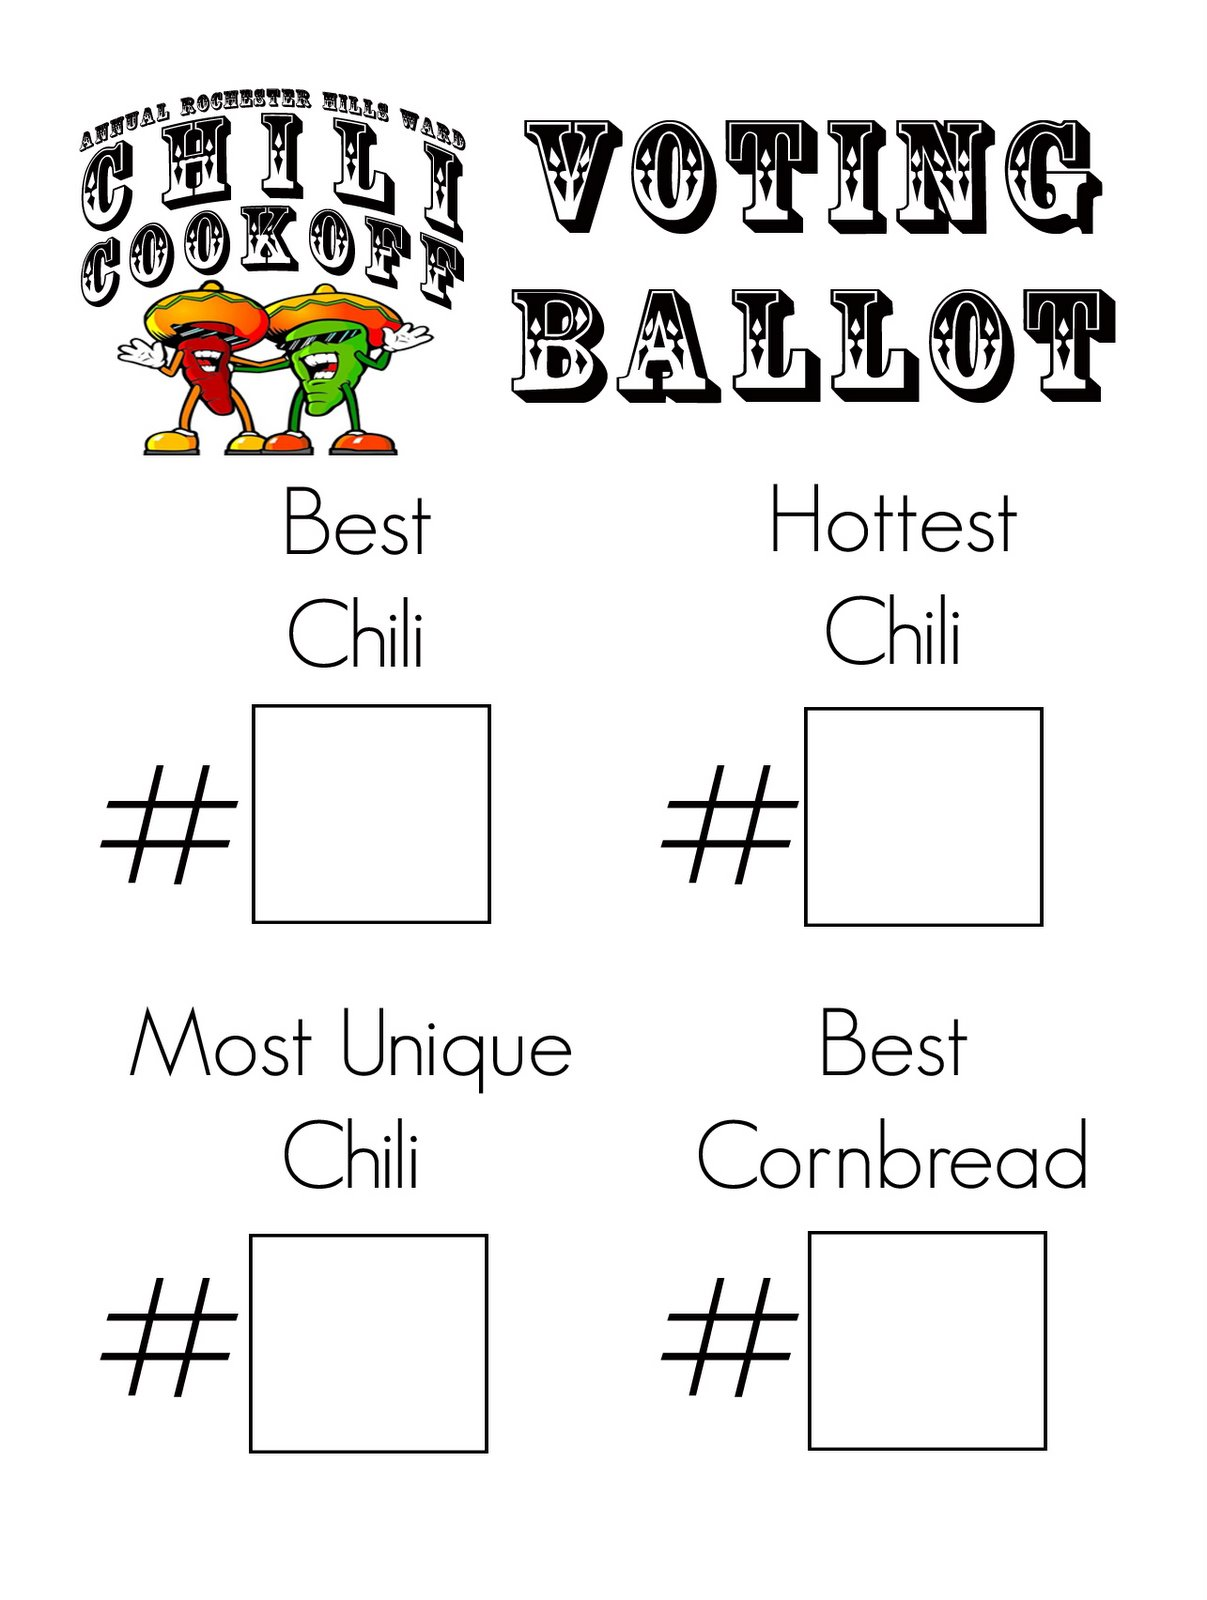 Chili cook off voting ballot template just b cause for Election ballots template